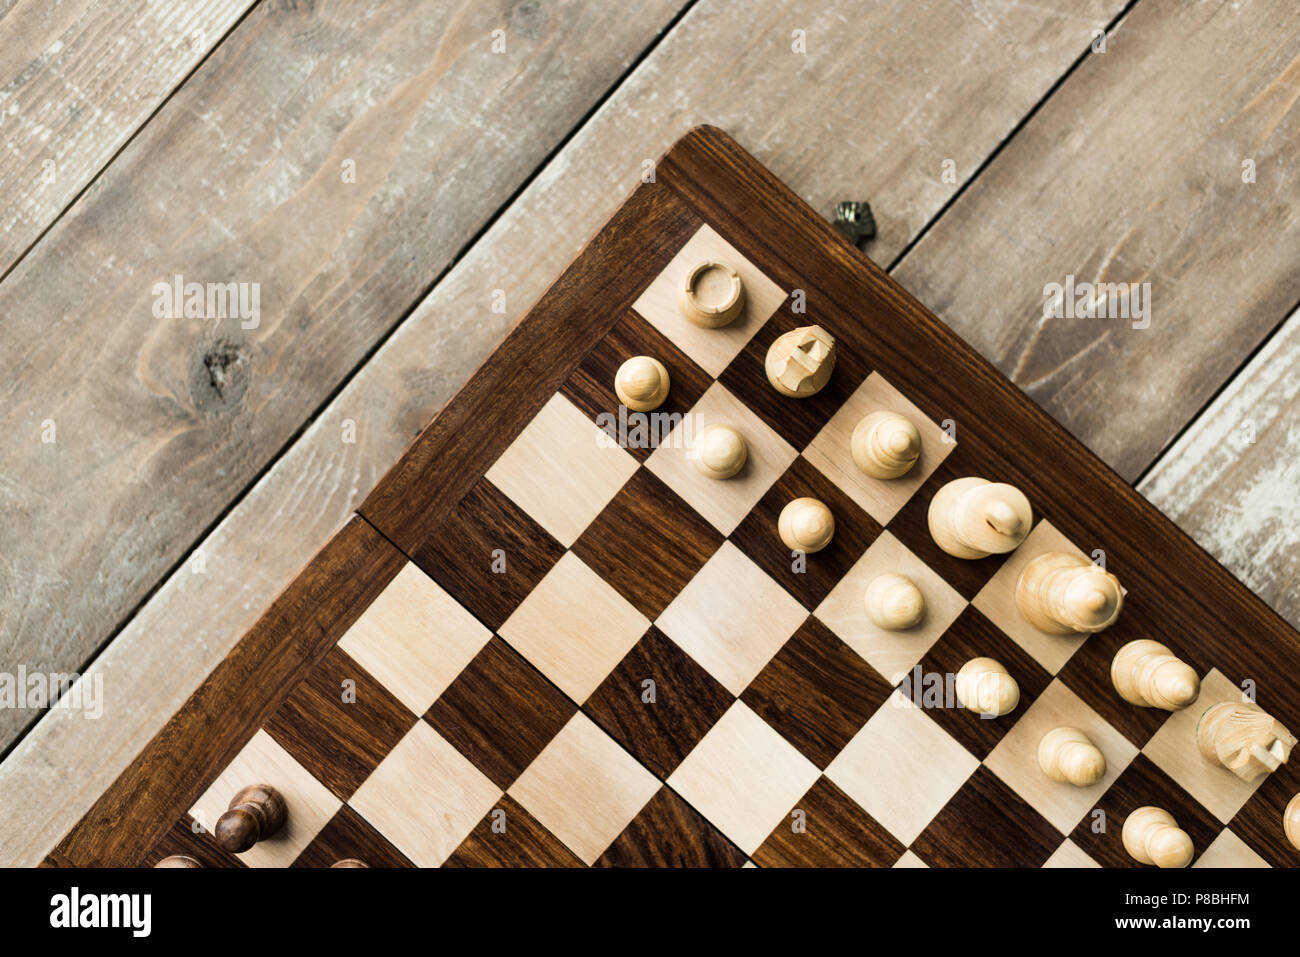 Cropped view of chess baord with chess pieces on rustic wooden surface - Stock Image